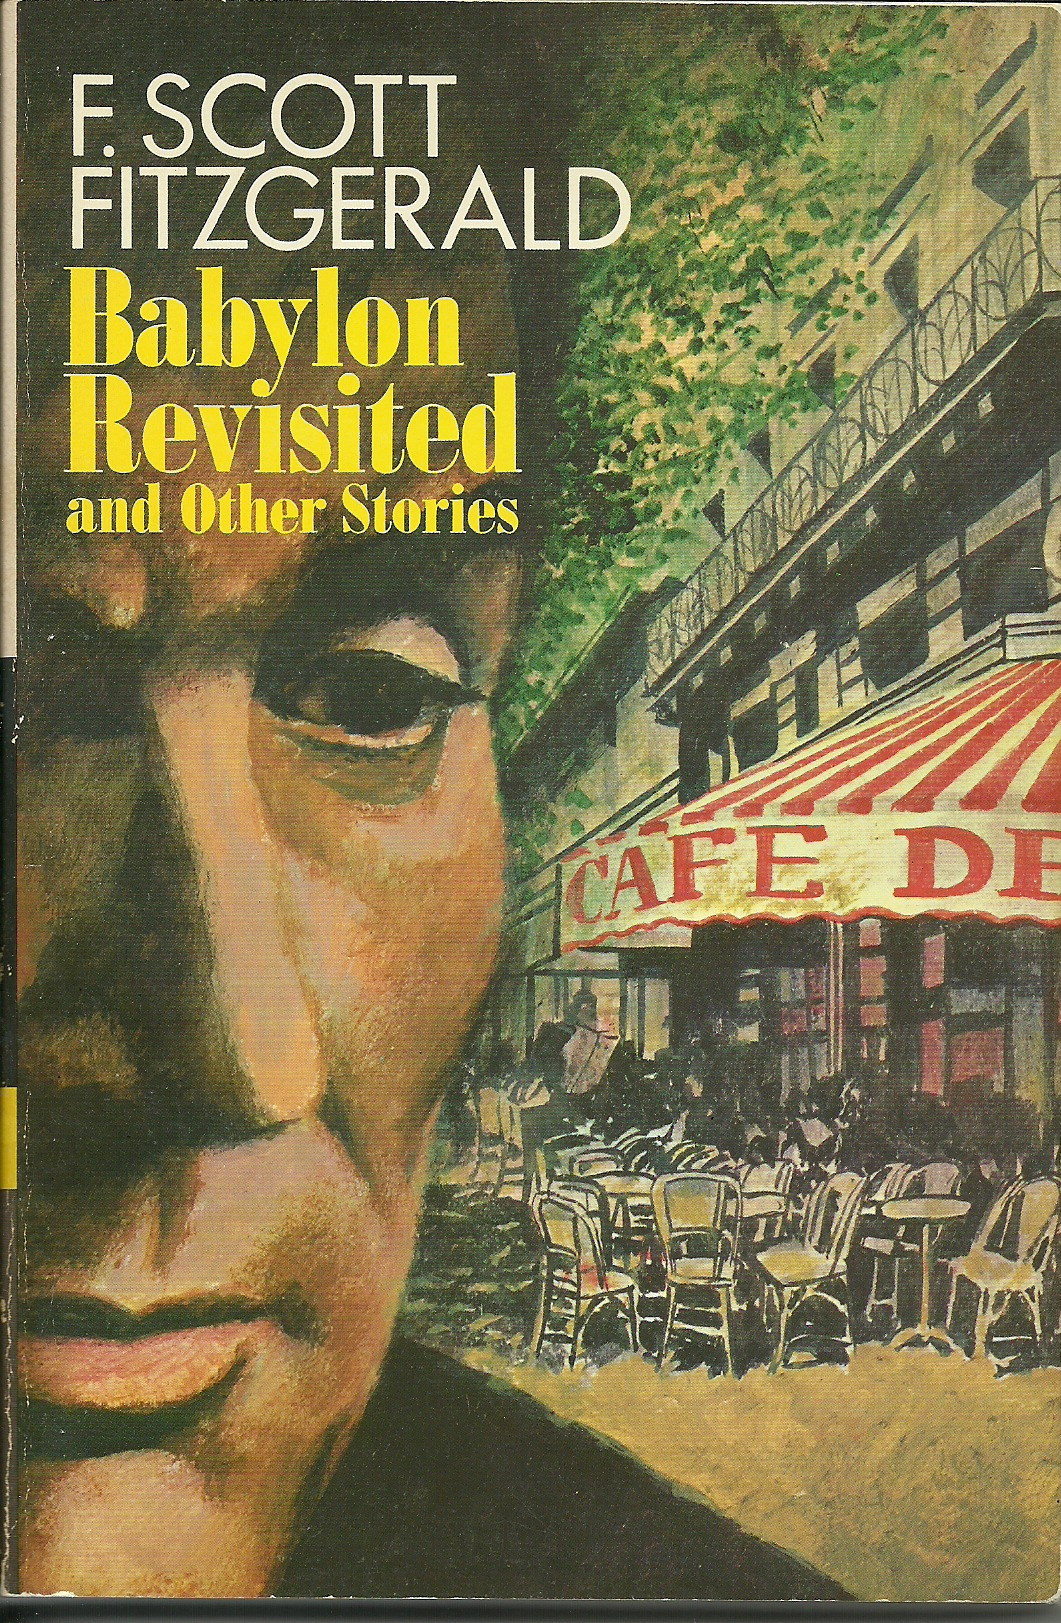 babylon revisited essays A literary analysis of babylon revisited pages 2 words 1,045 view full essay more essays like this: not sure what i'd do without @kibin - alfredo alvarez, student.